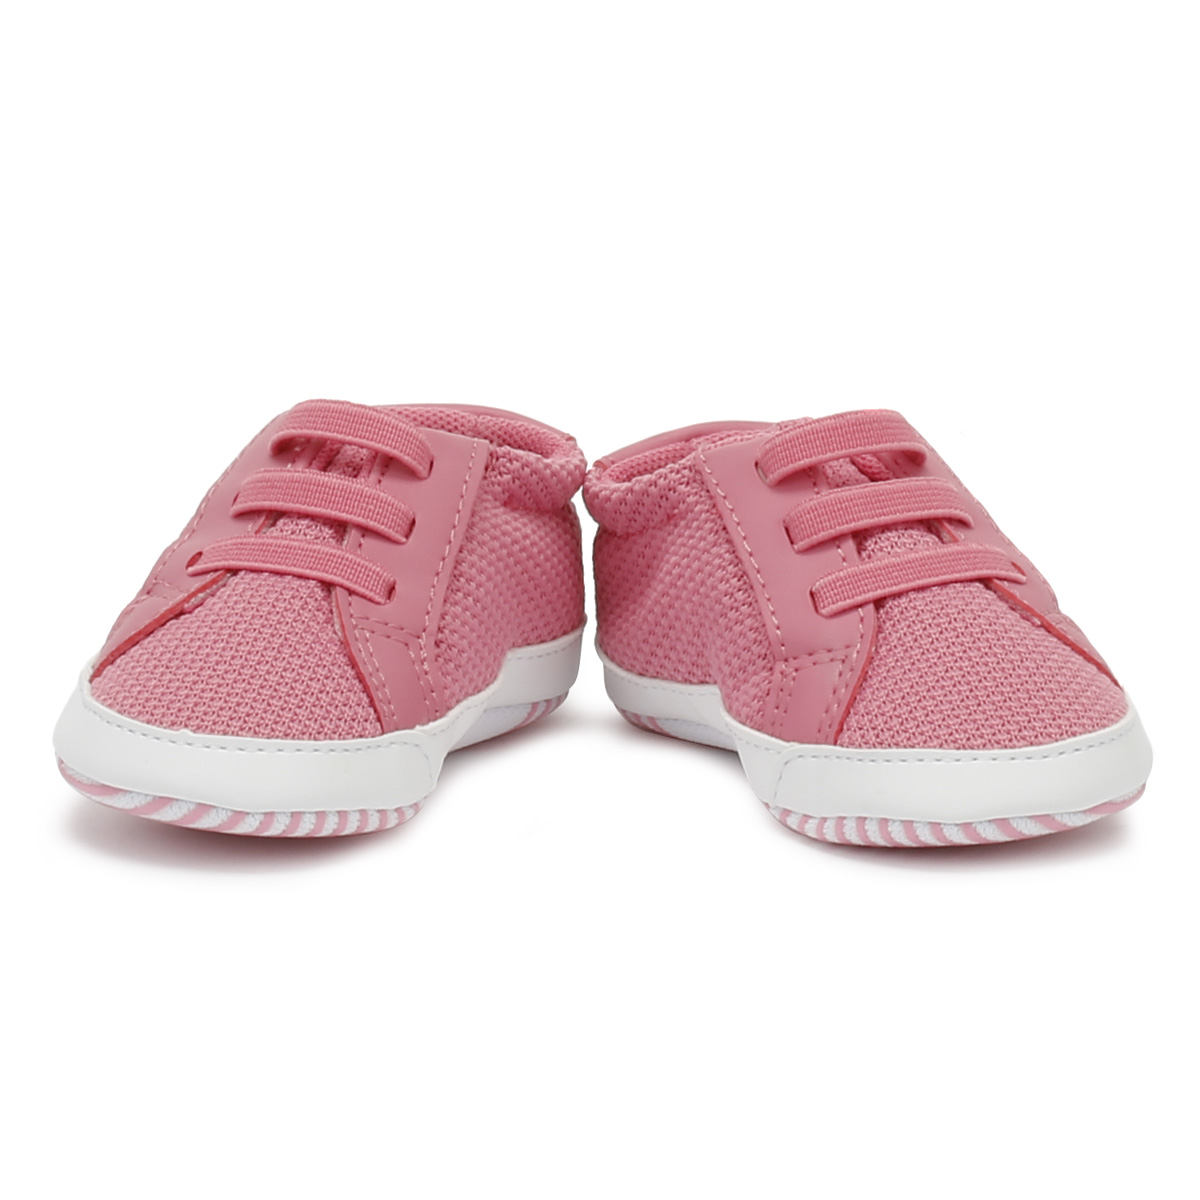 Lacoste Baby Pink White L.12.12 Crib 318 1 Trainers